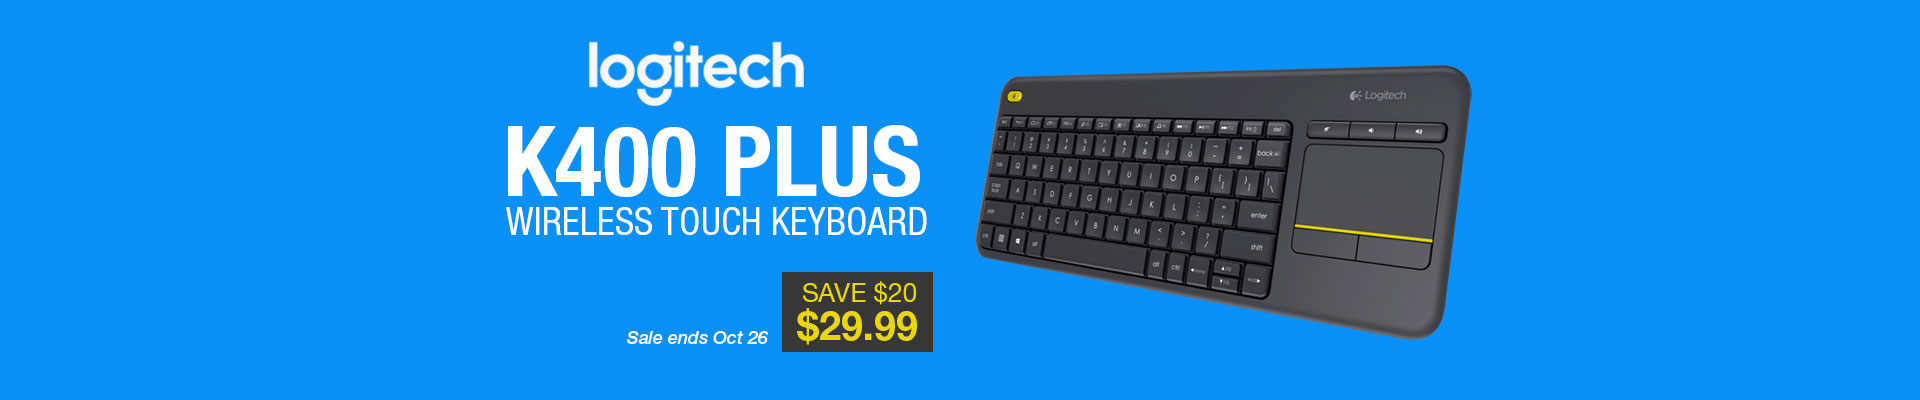 Logitech K400 Plus Wireless Touch Keyboard TV